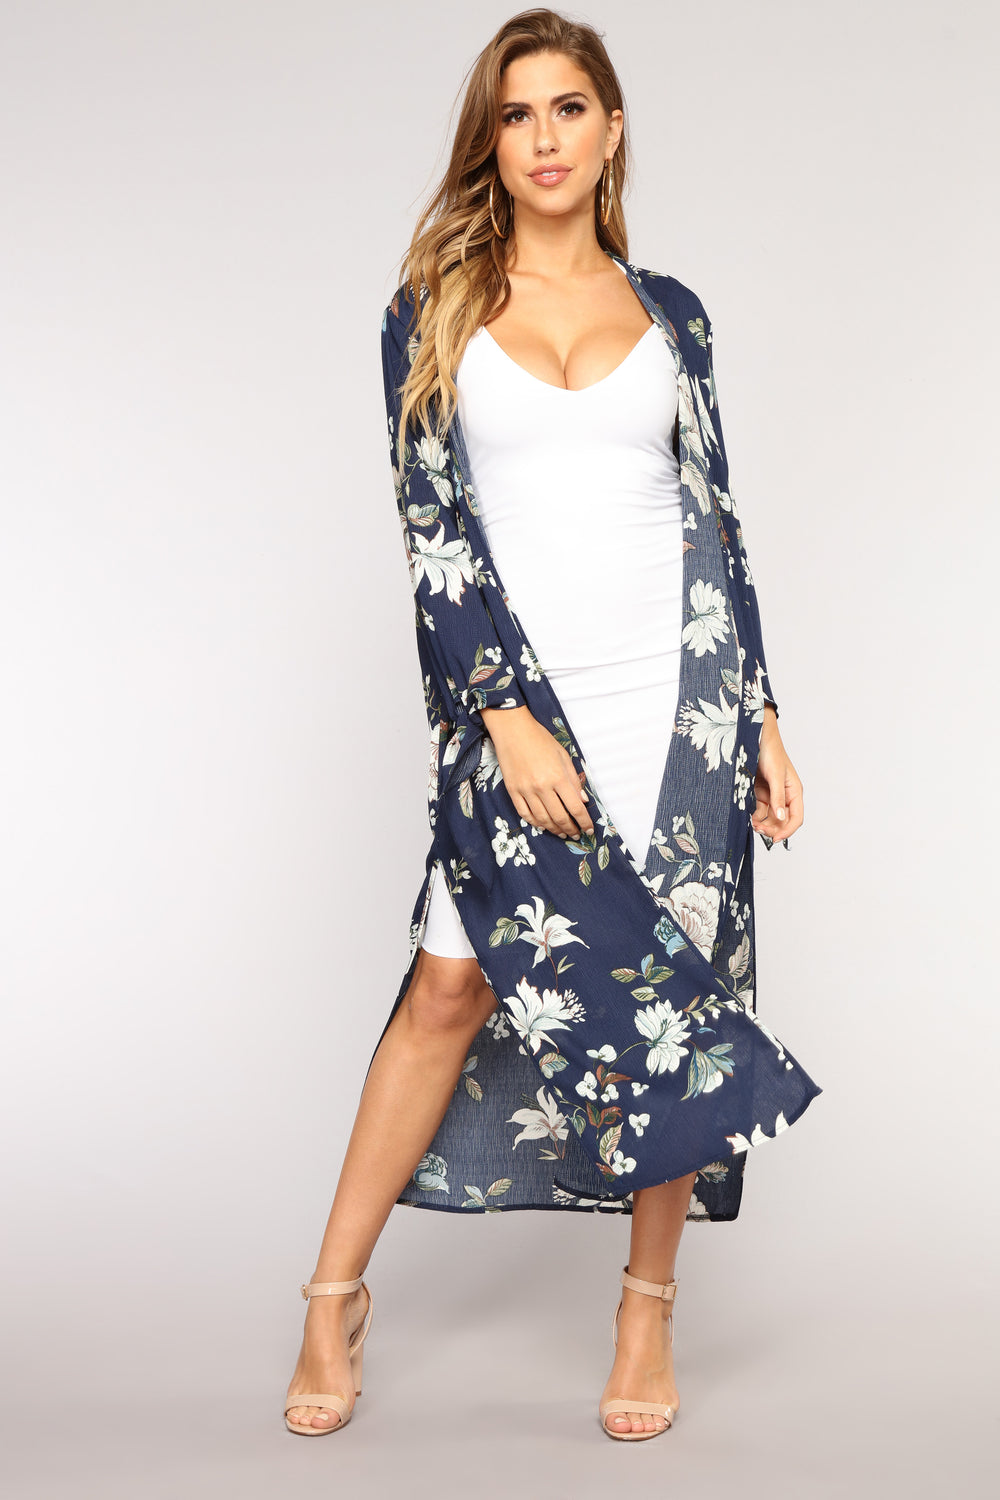 Going With The Flow Kimono - Navy/Multi